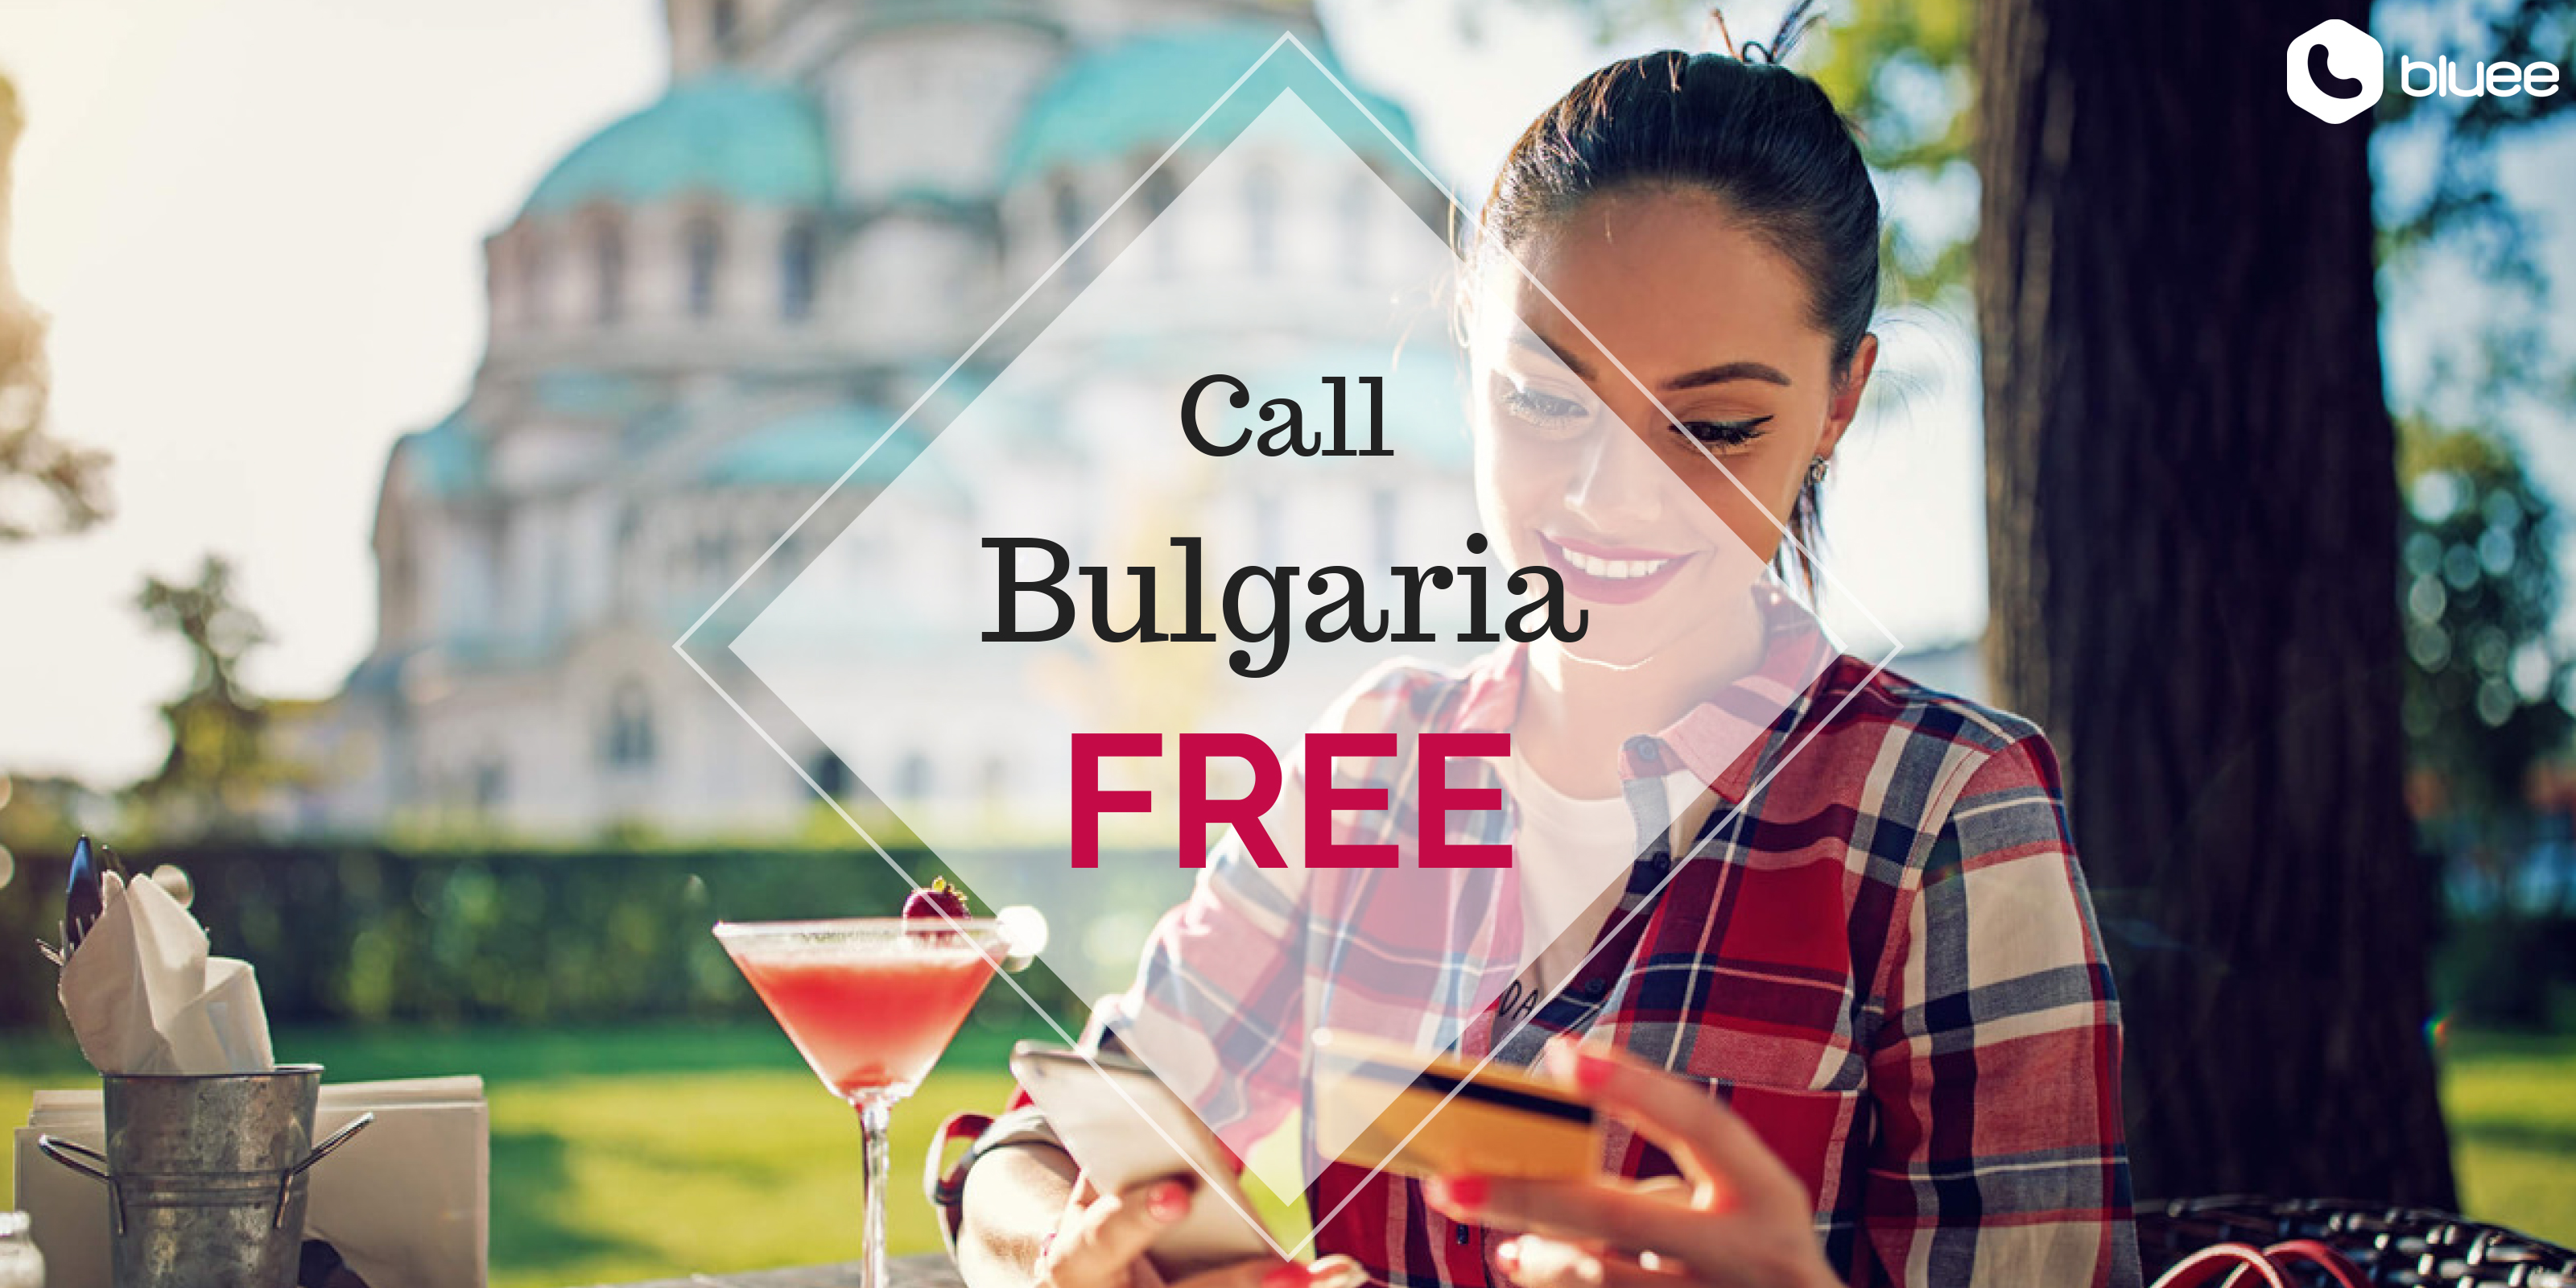 Call Bulgaria for FREE